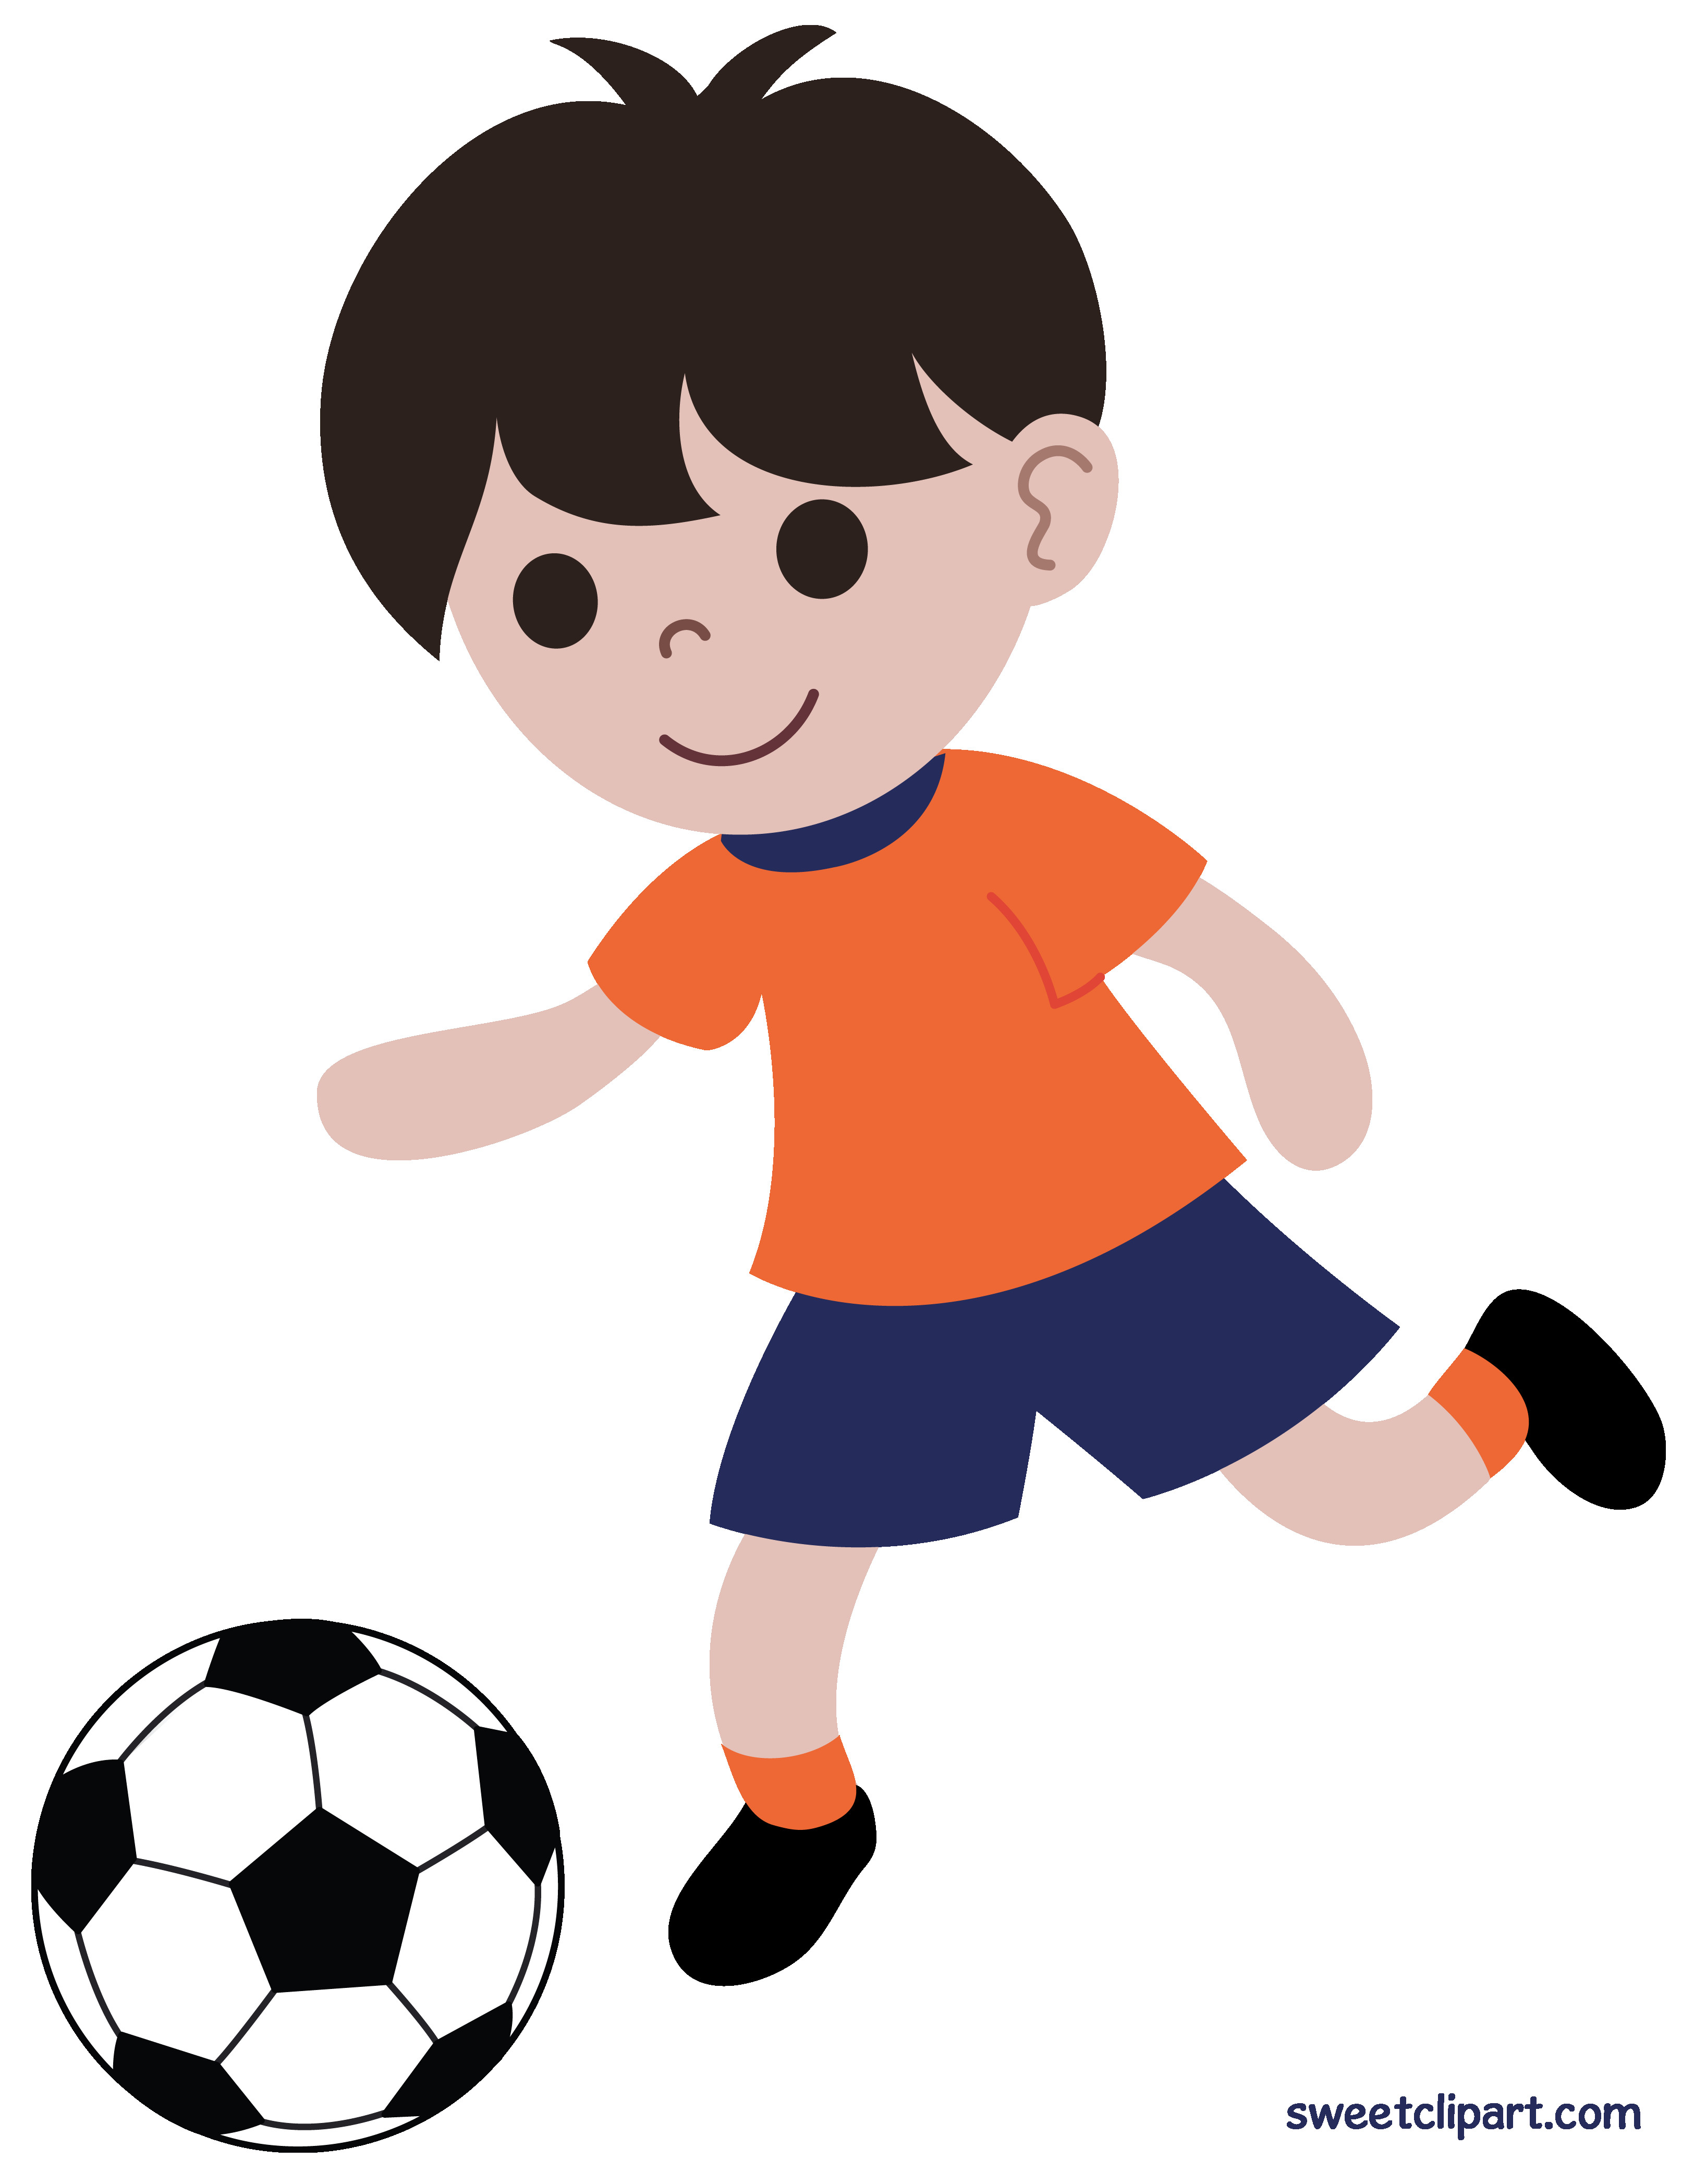 football player clipart at getdrawings com free for personal use rh getdrawings com soccer player clipart black and white soccer player clipart gif